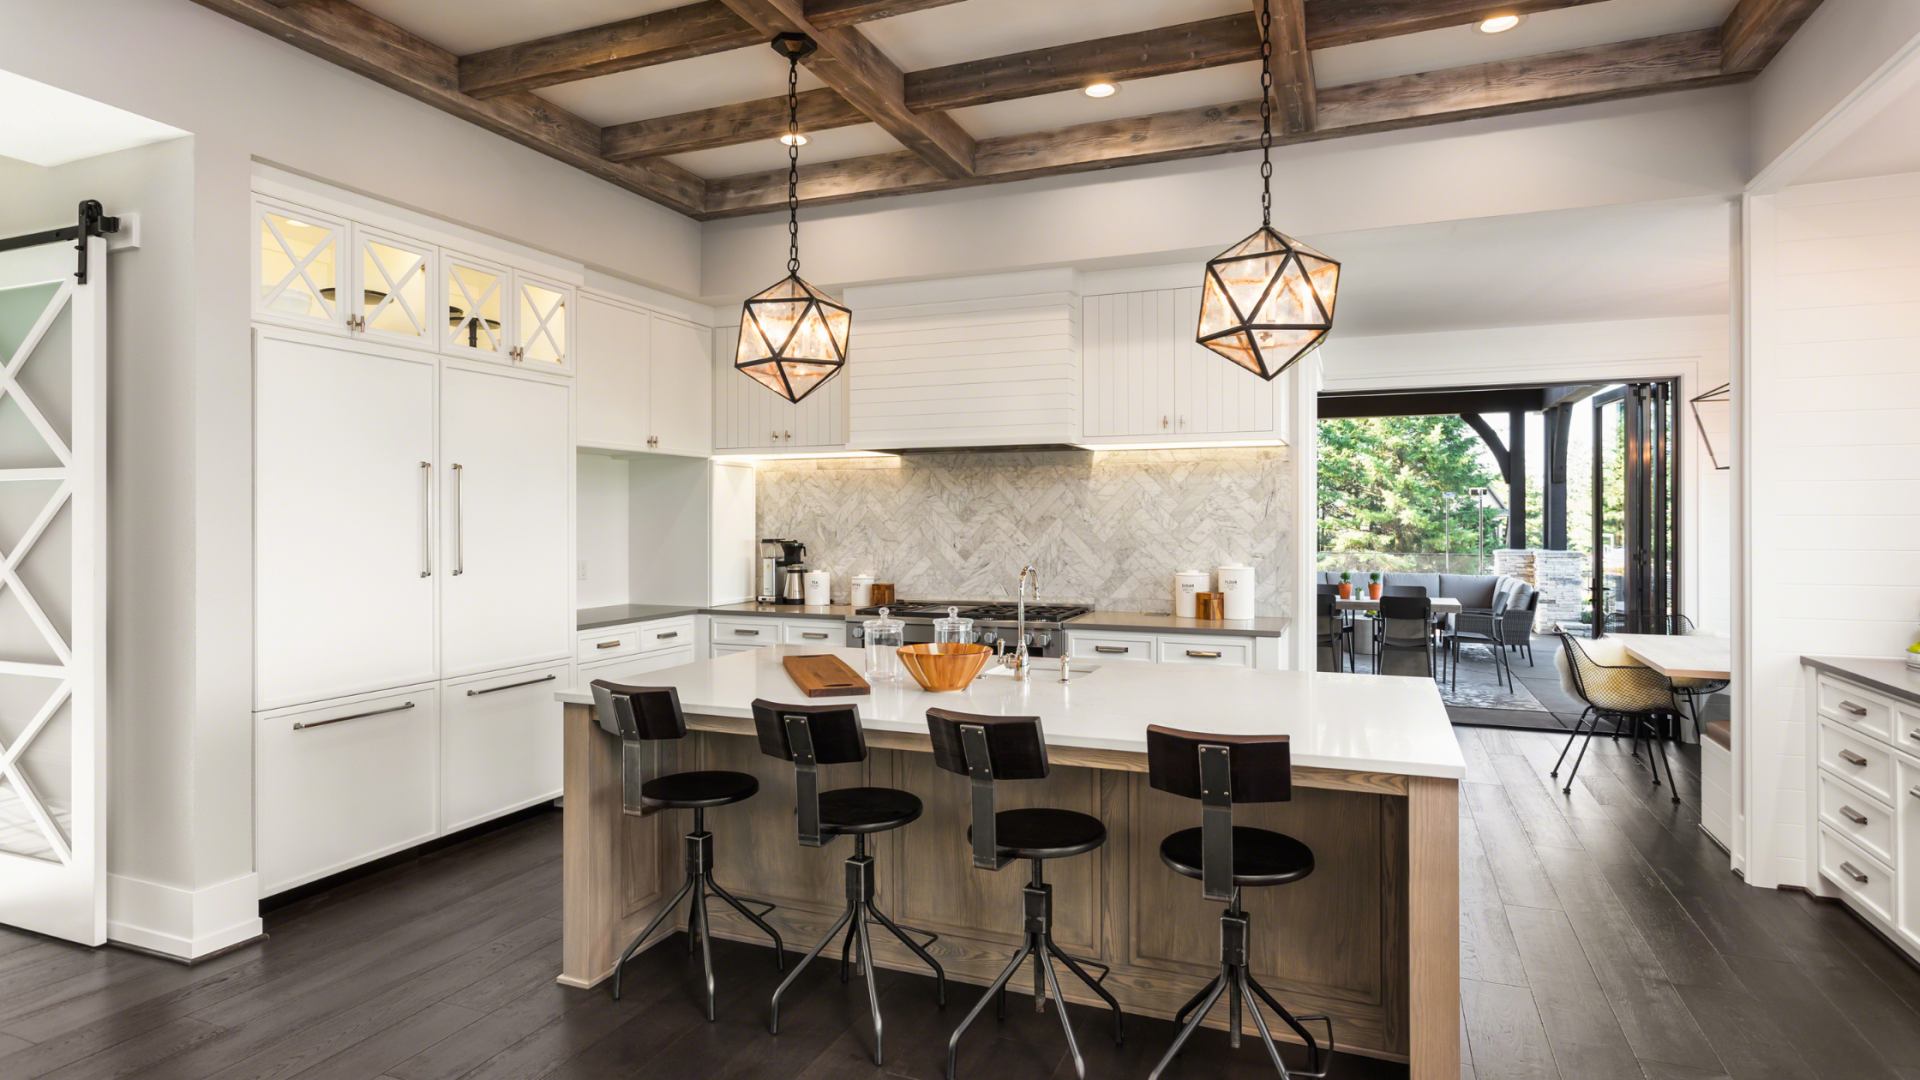 Home featuring Lutron Lighting System